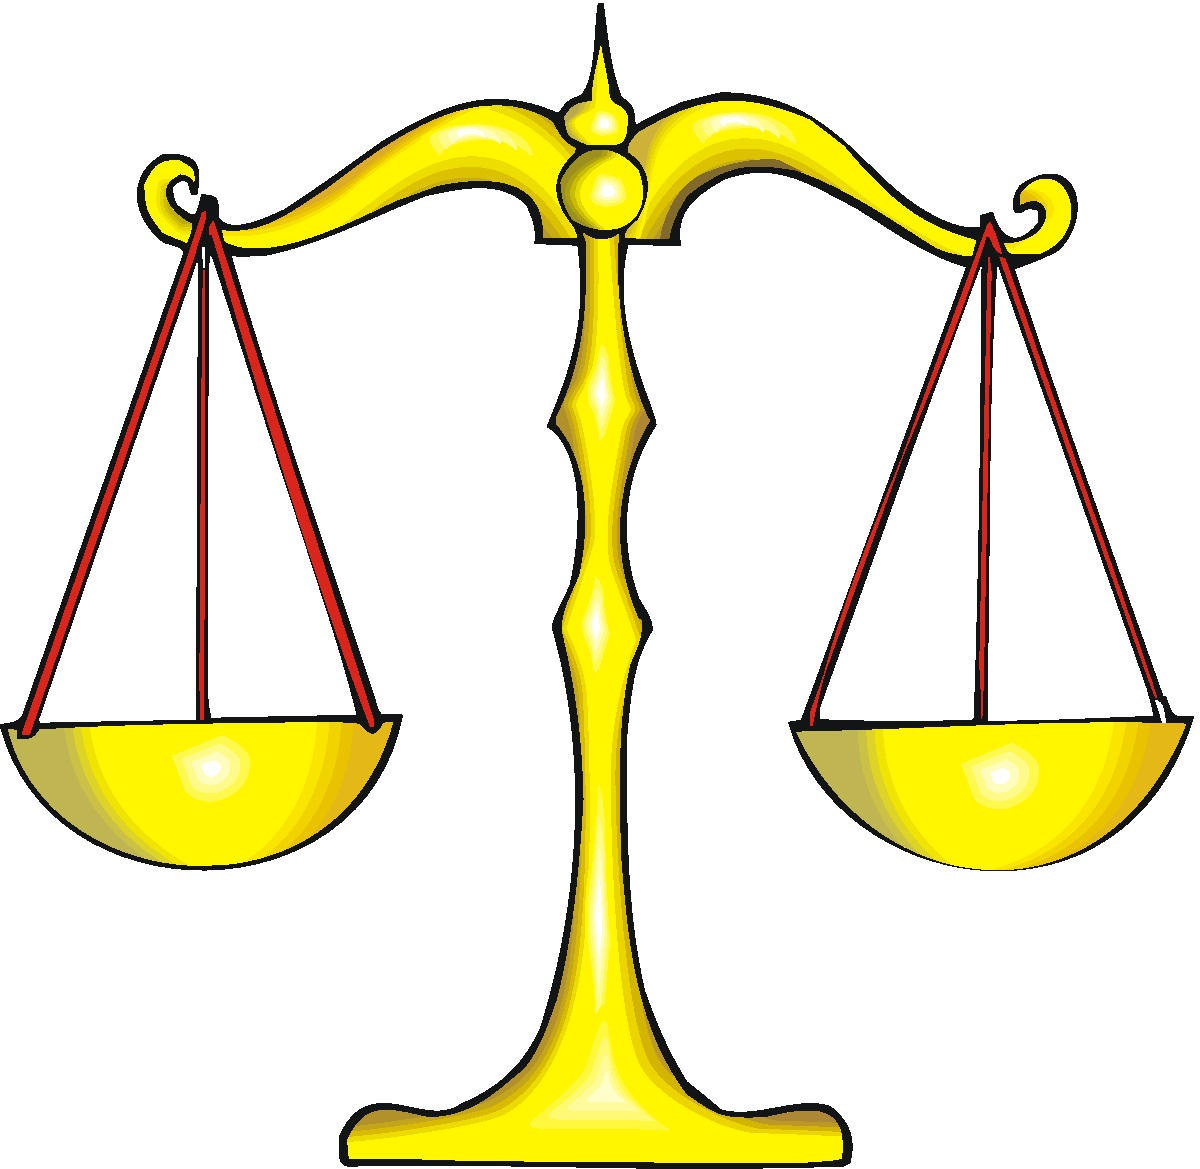 Images For > Balance Scales Clip Art - Cliparts.co